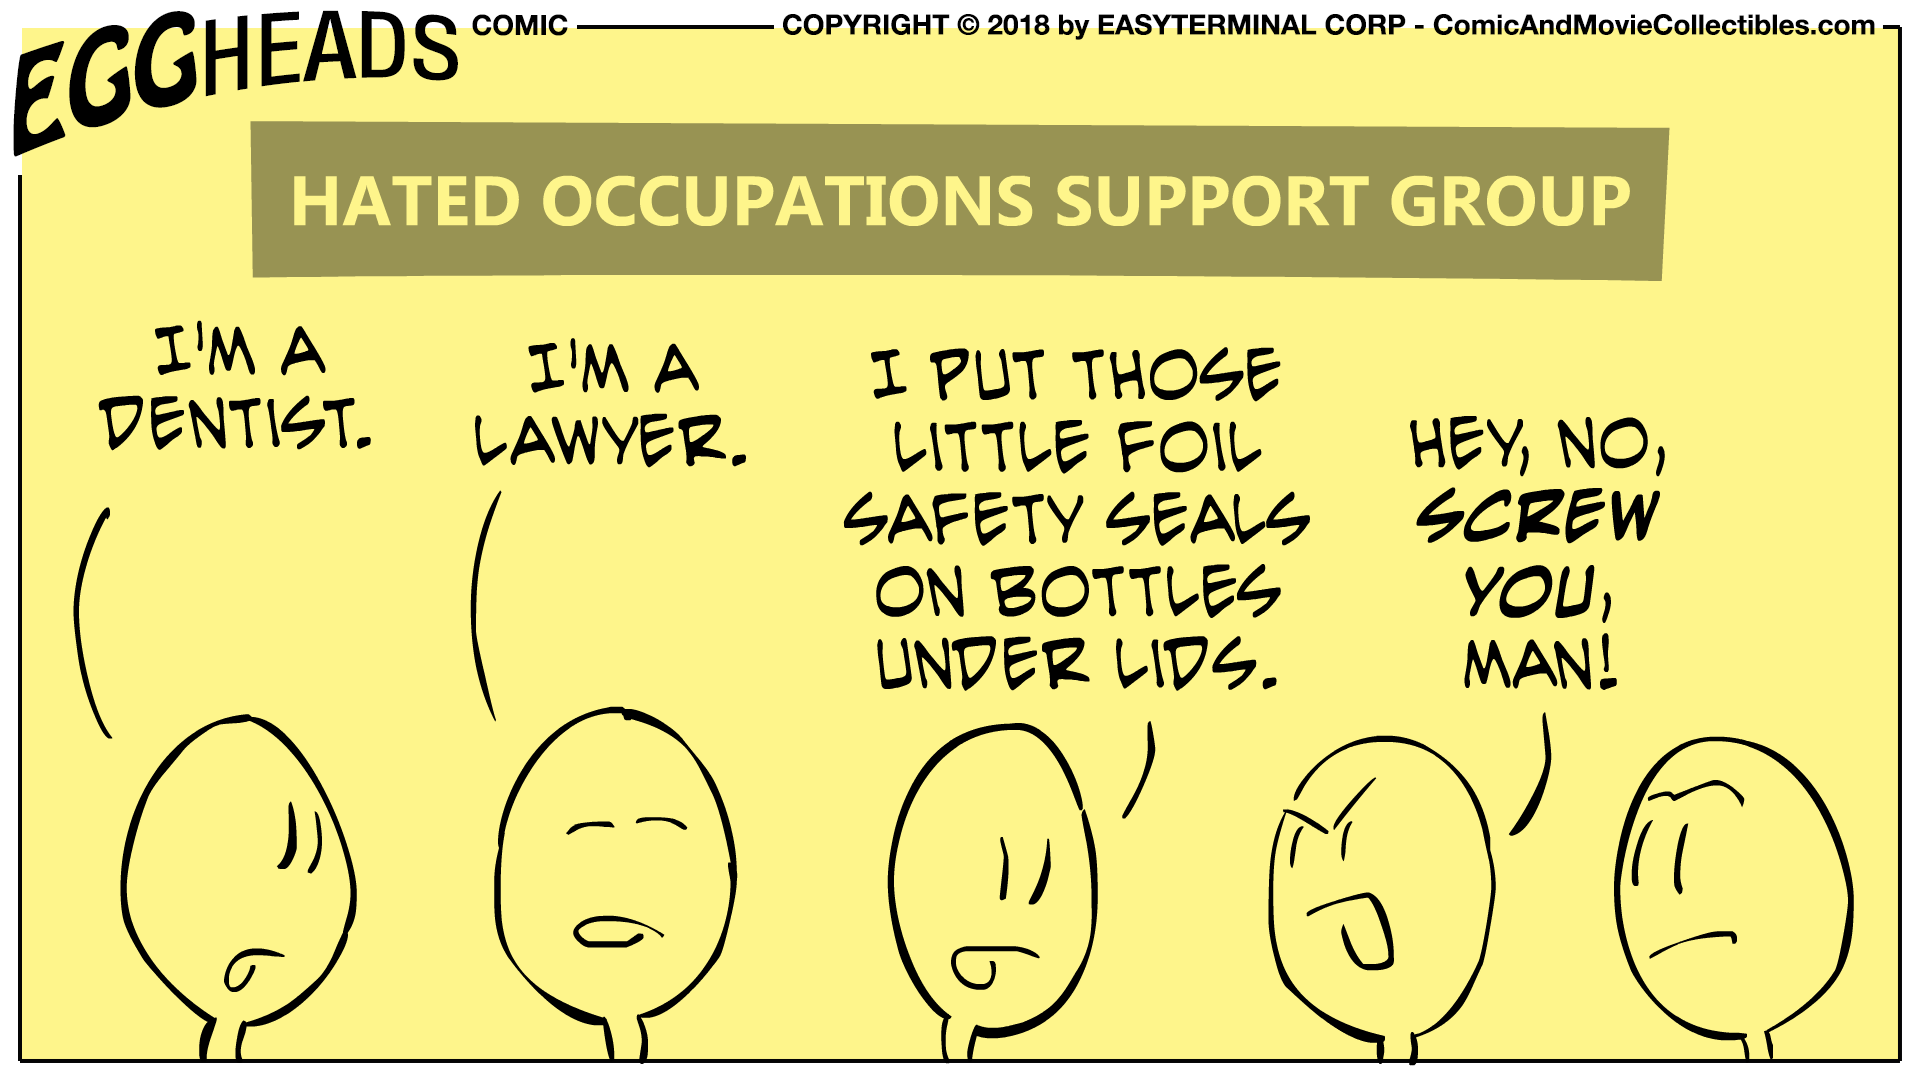 Webcomic Eggheads Comic Strip 031 Support Group